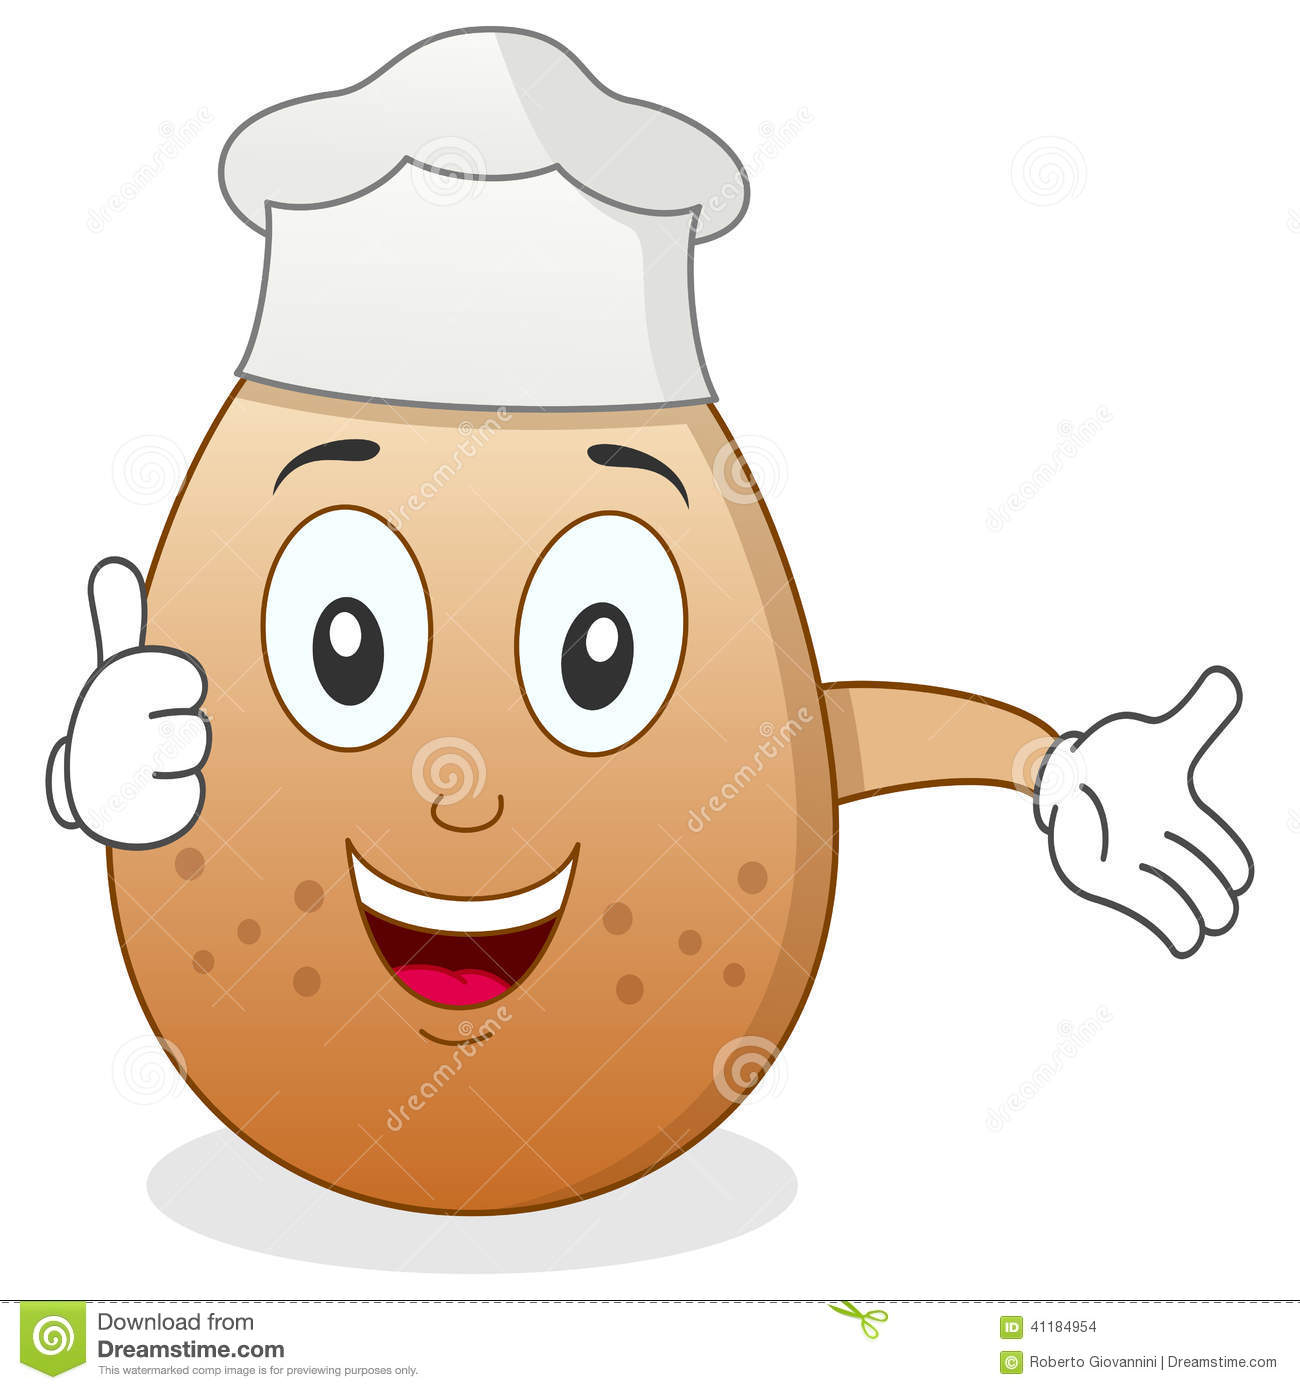 Chef Egg Character with Thumbs Up